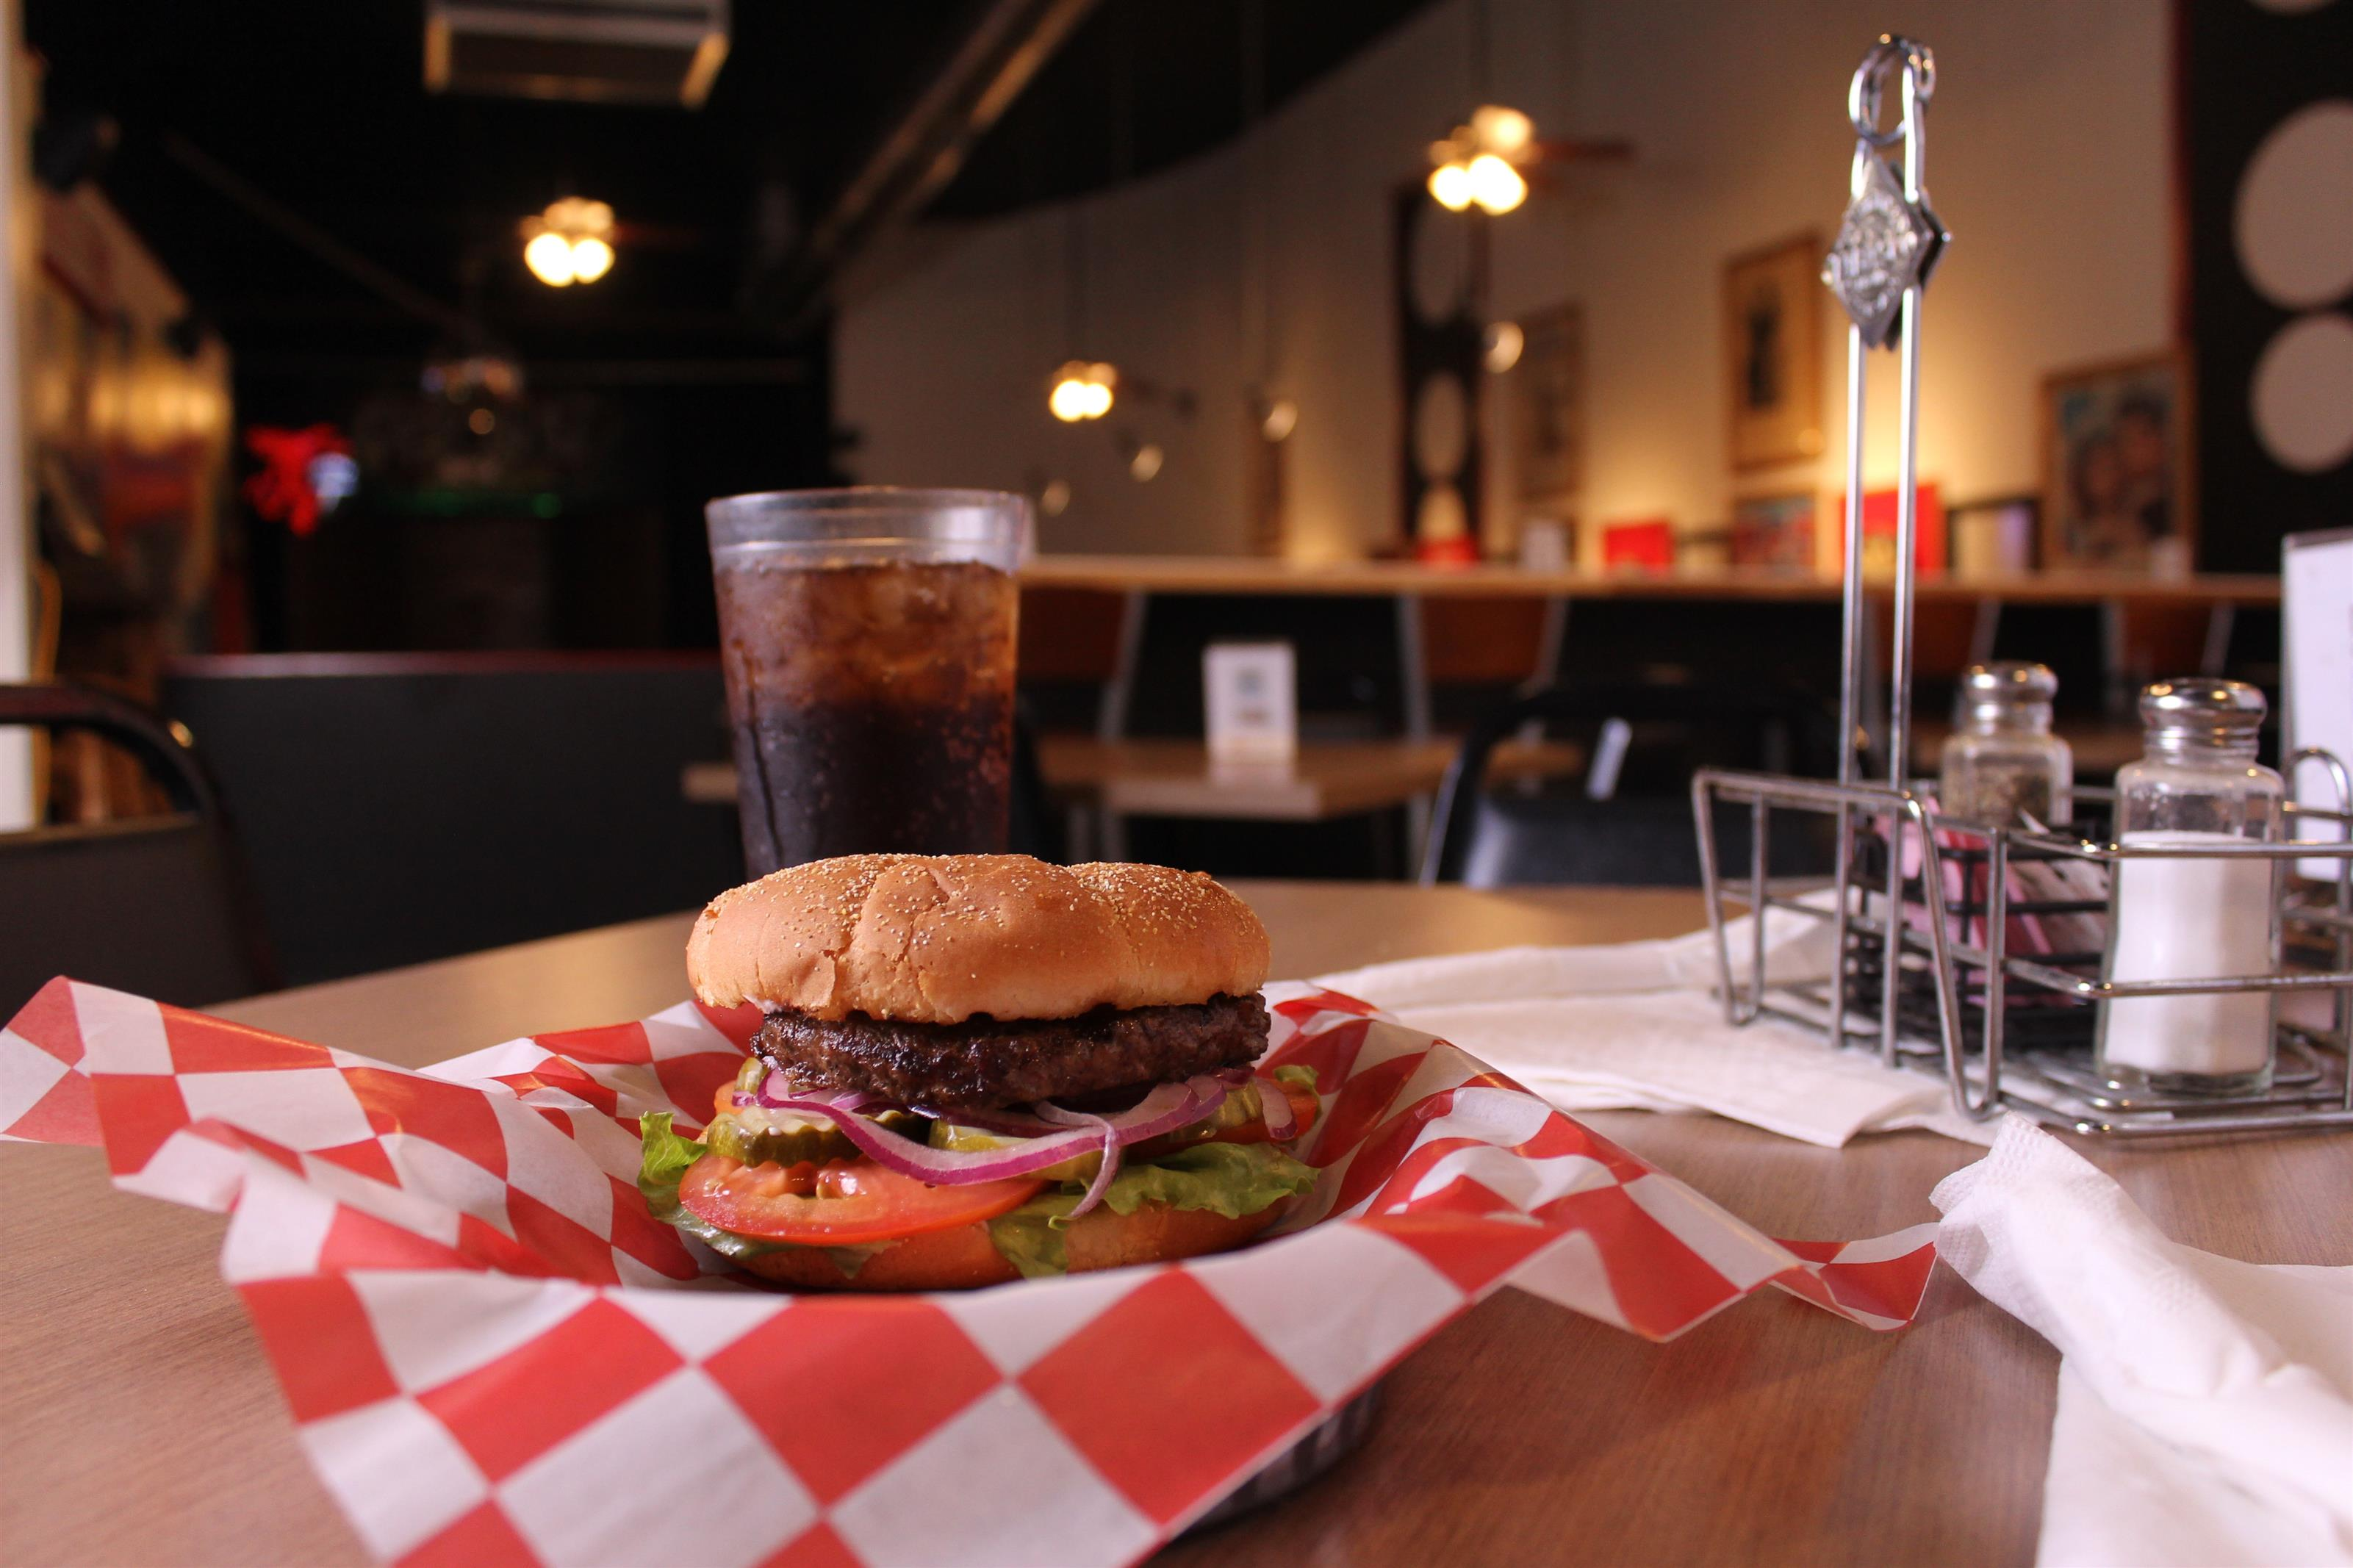 hamburger with cola in background